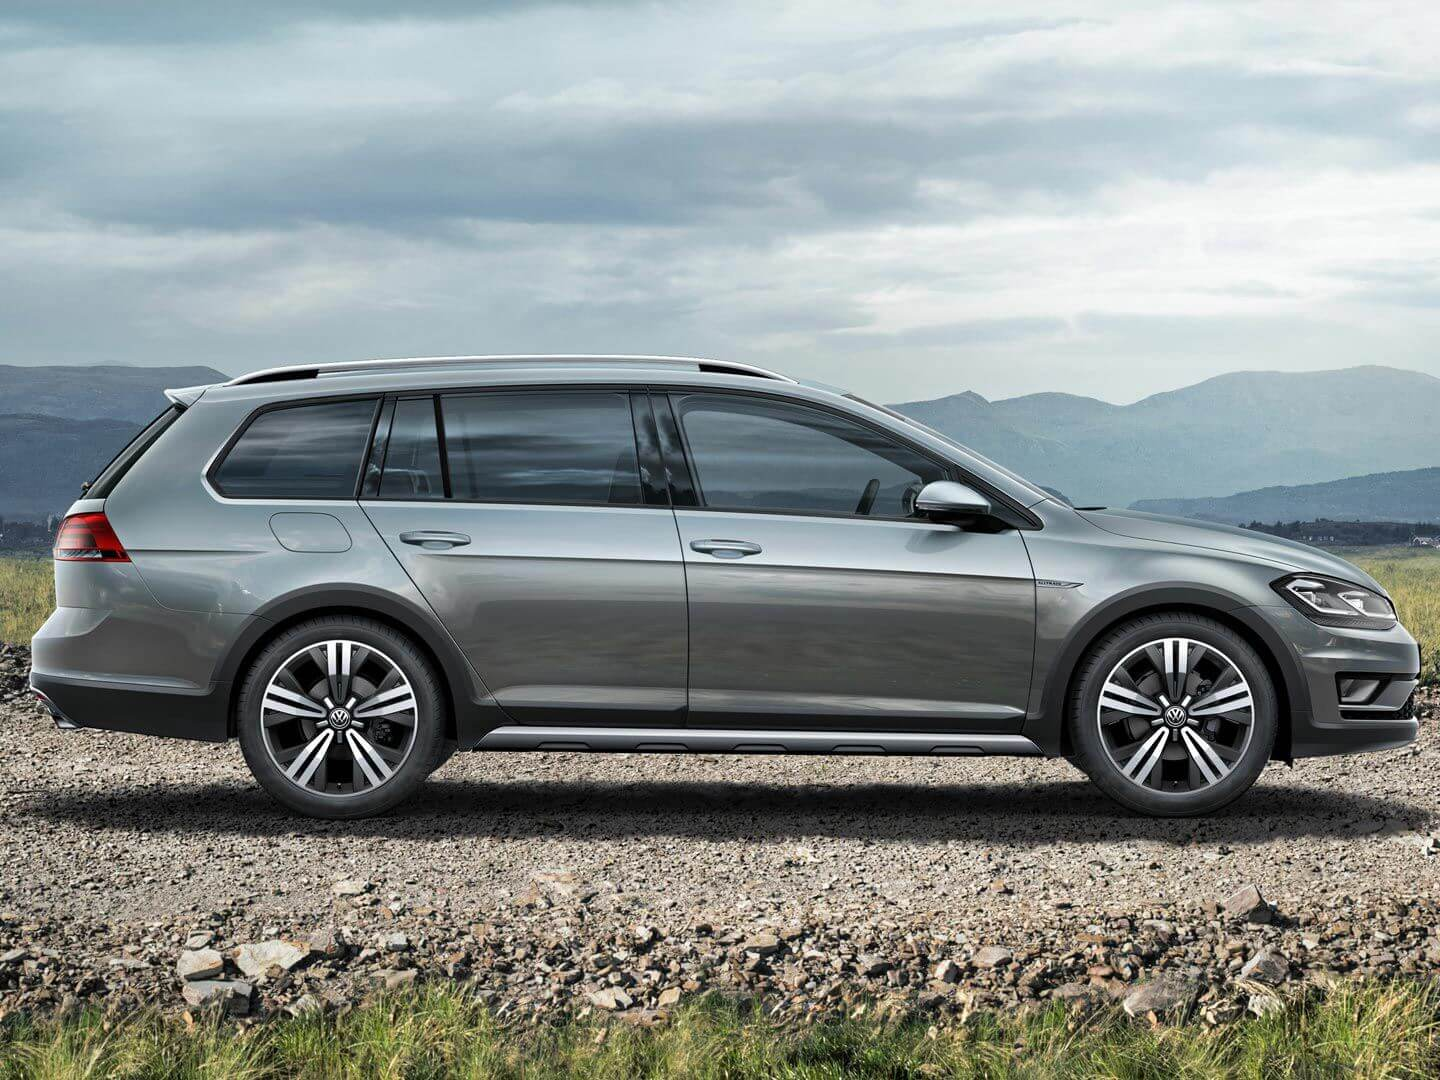 Golf Alltrack <strong>Looks great on the street</strong> and great on the dirt